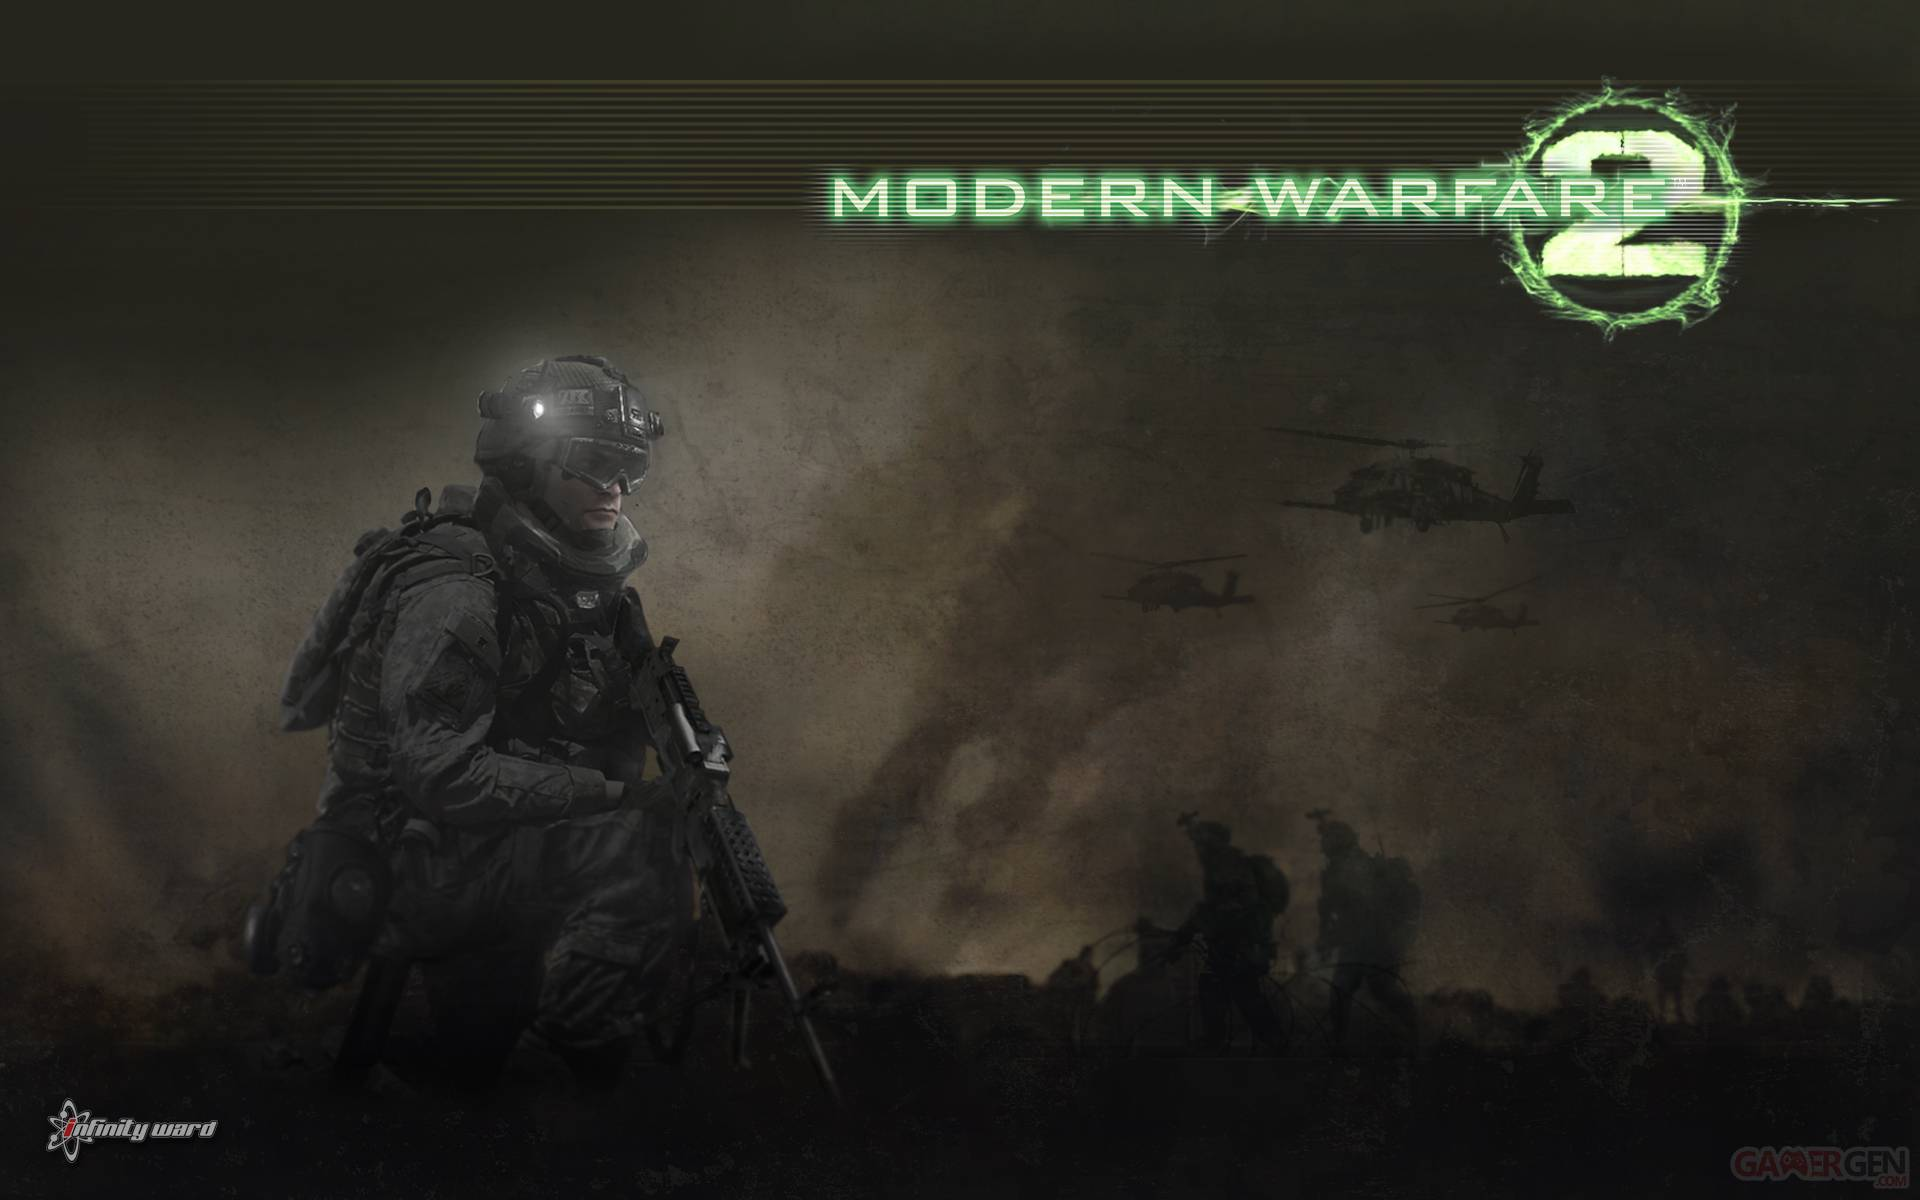 Wallpaper_05_1920call_of_duty_modern_warfare_2